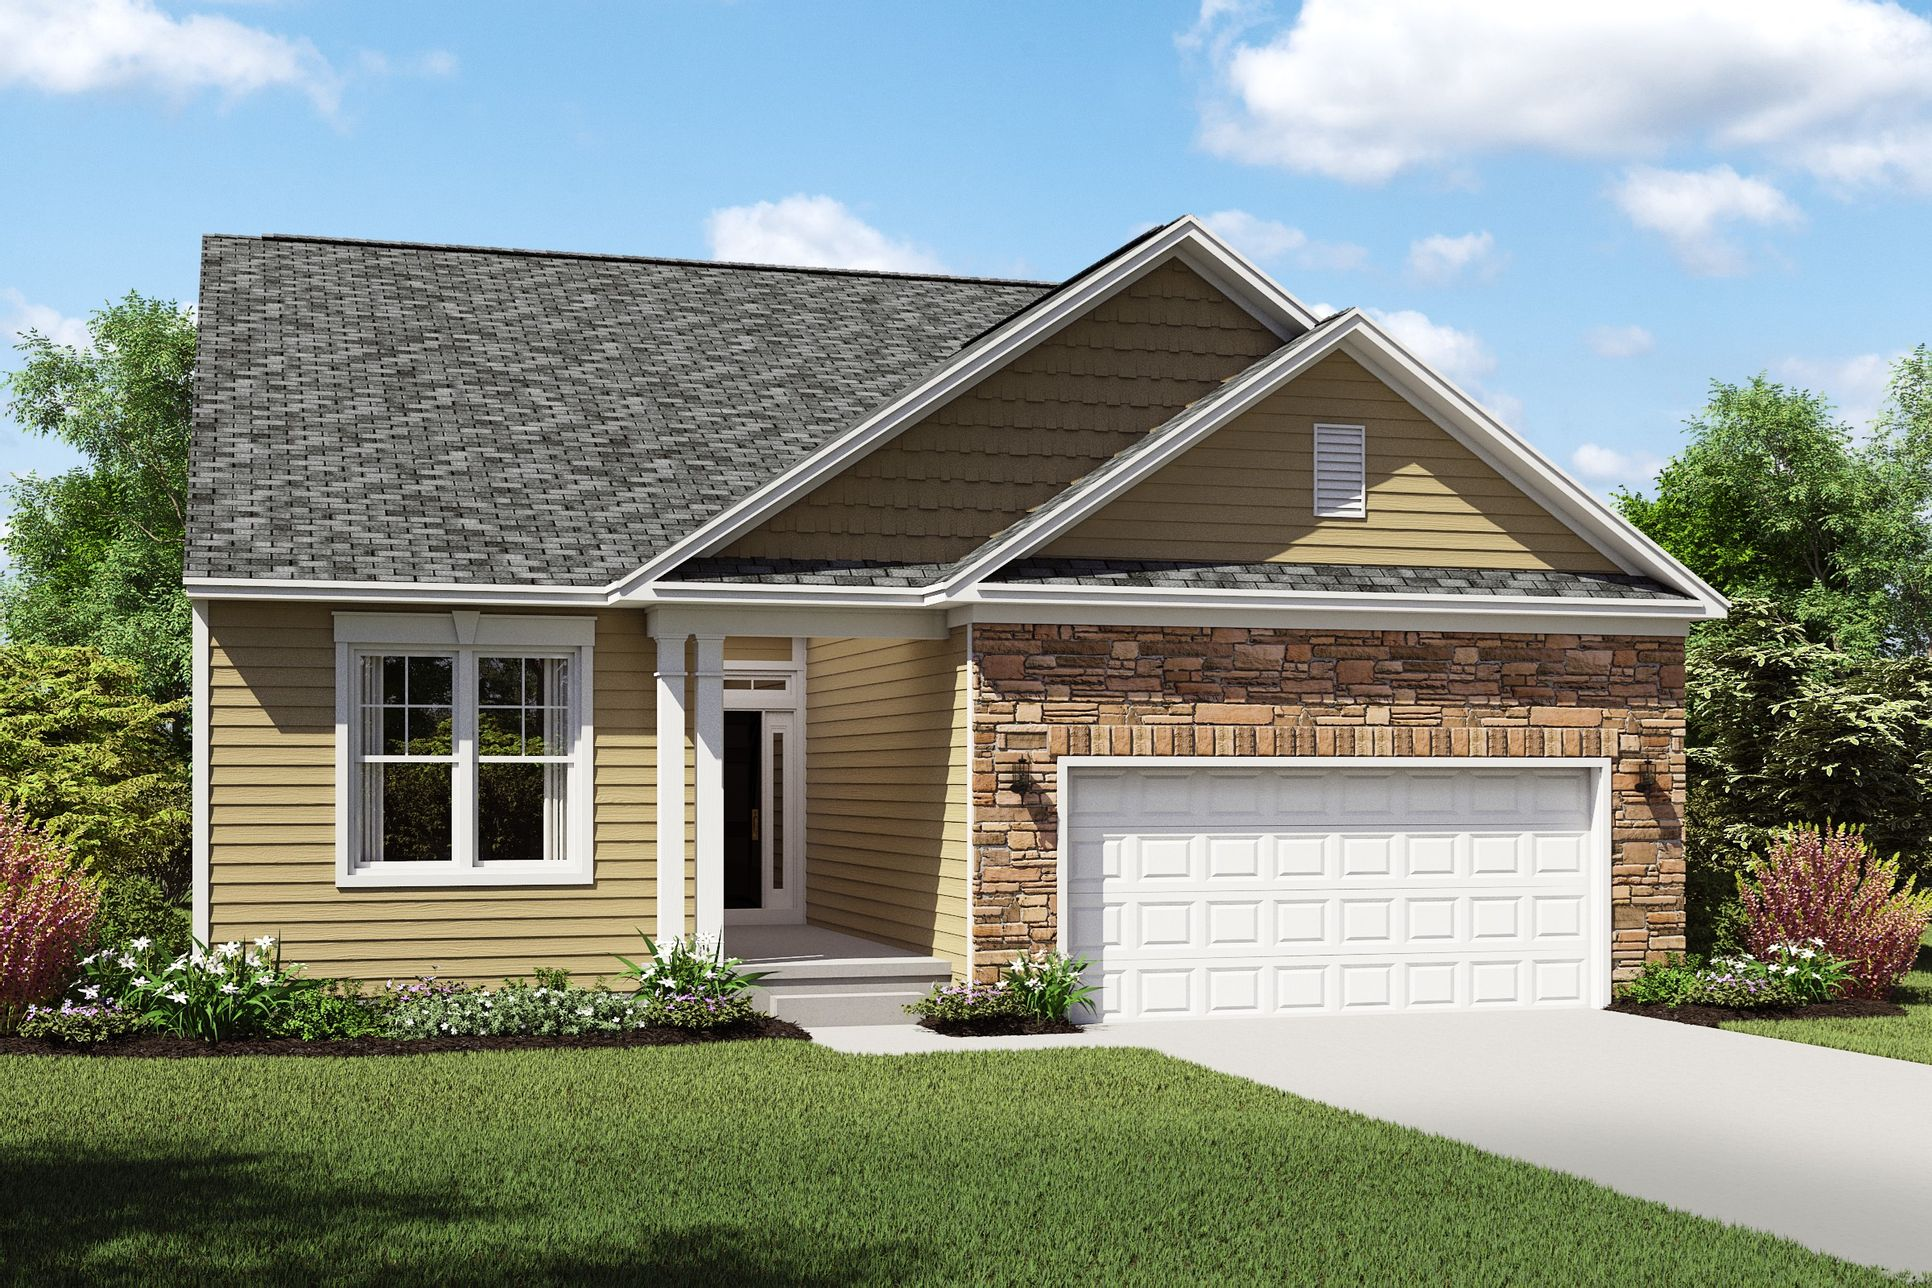 Exterior:Killarney D with opt. stone